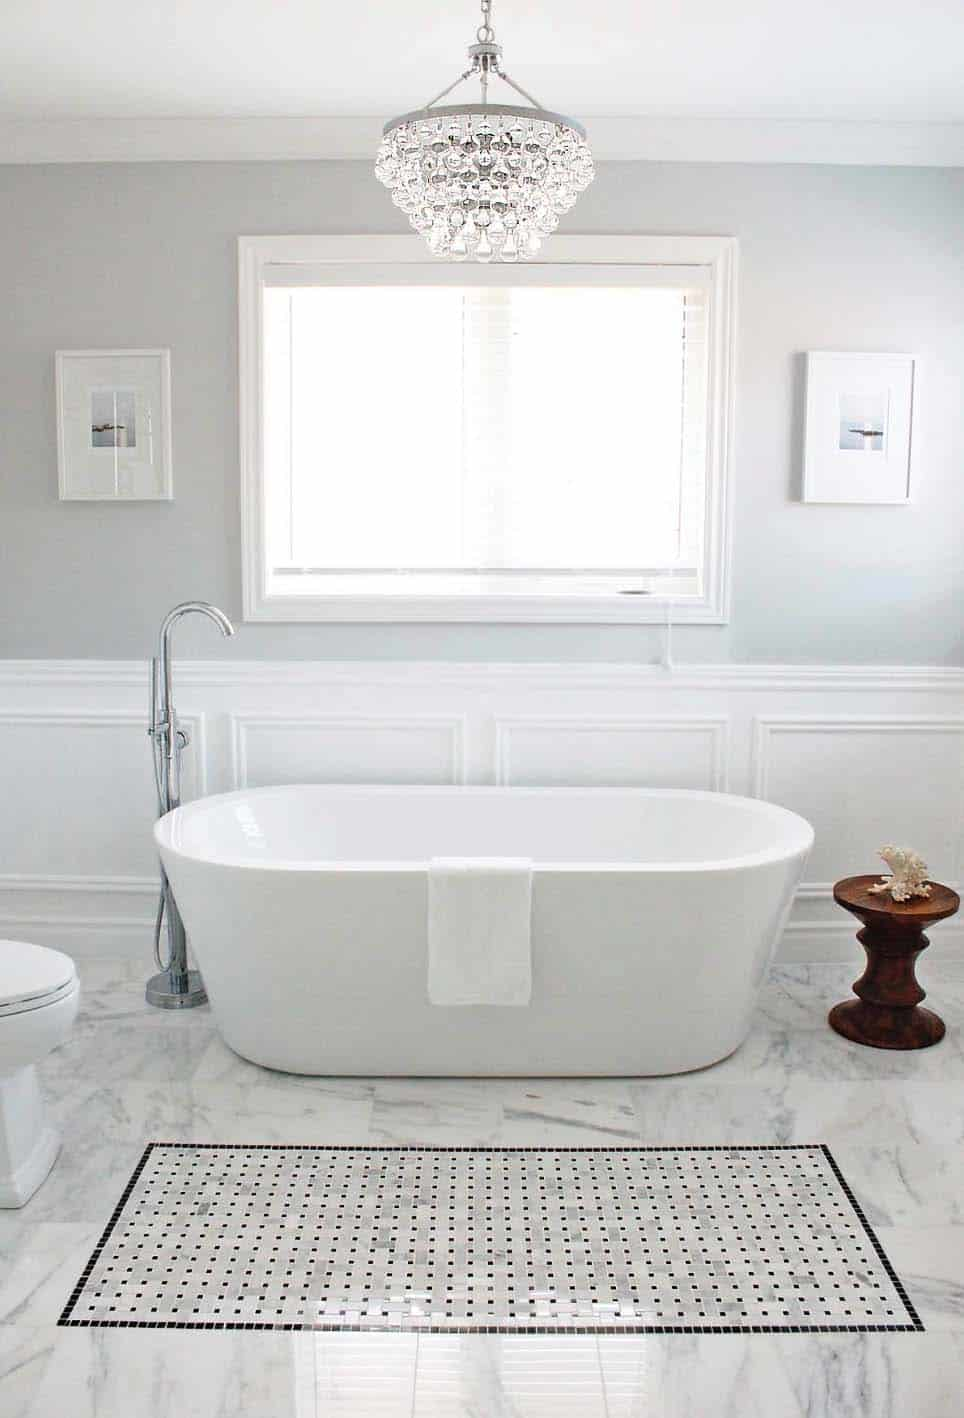 Freestanding-Tubs-Bathroom-Ideas-27-1 Kindesign